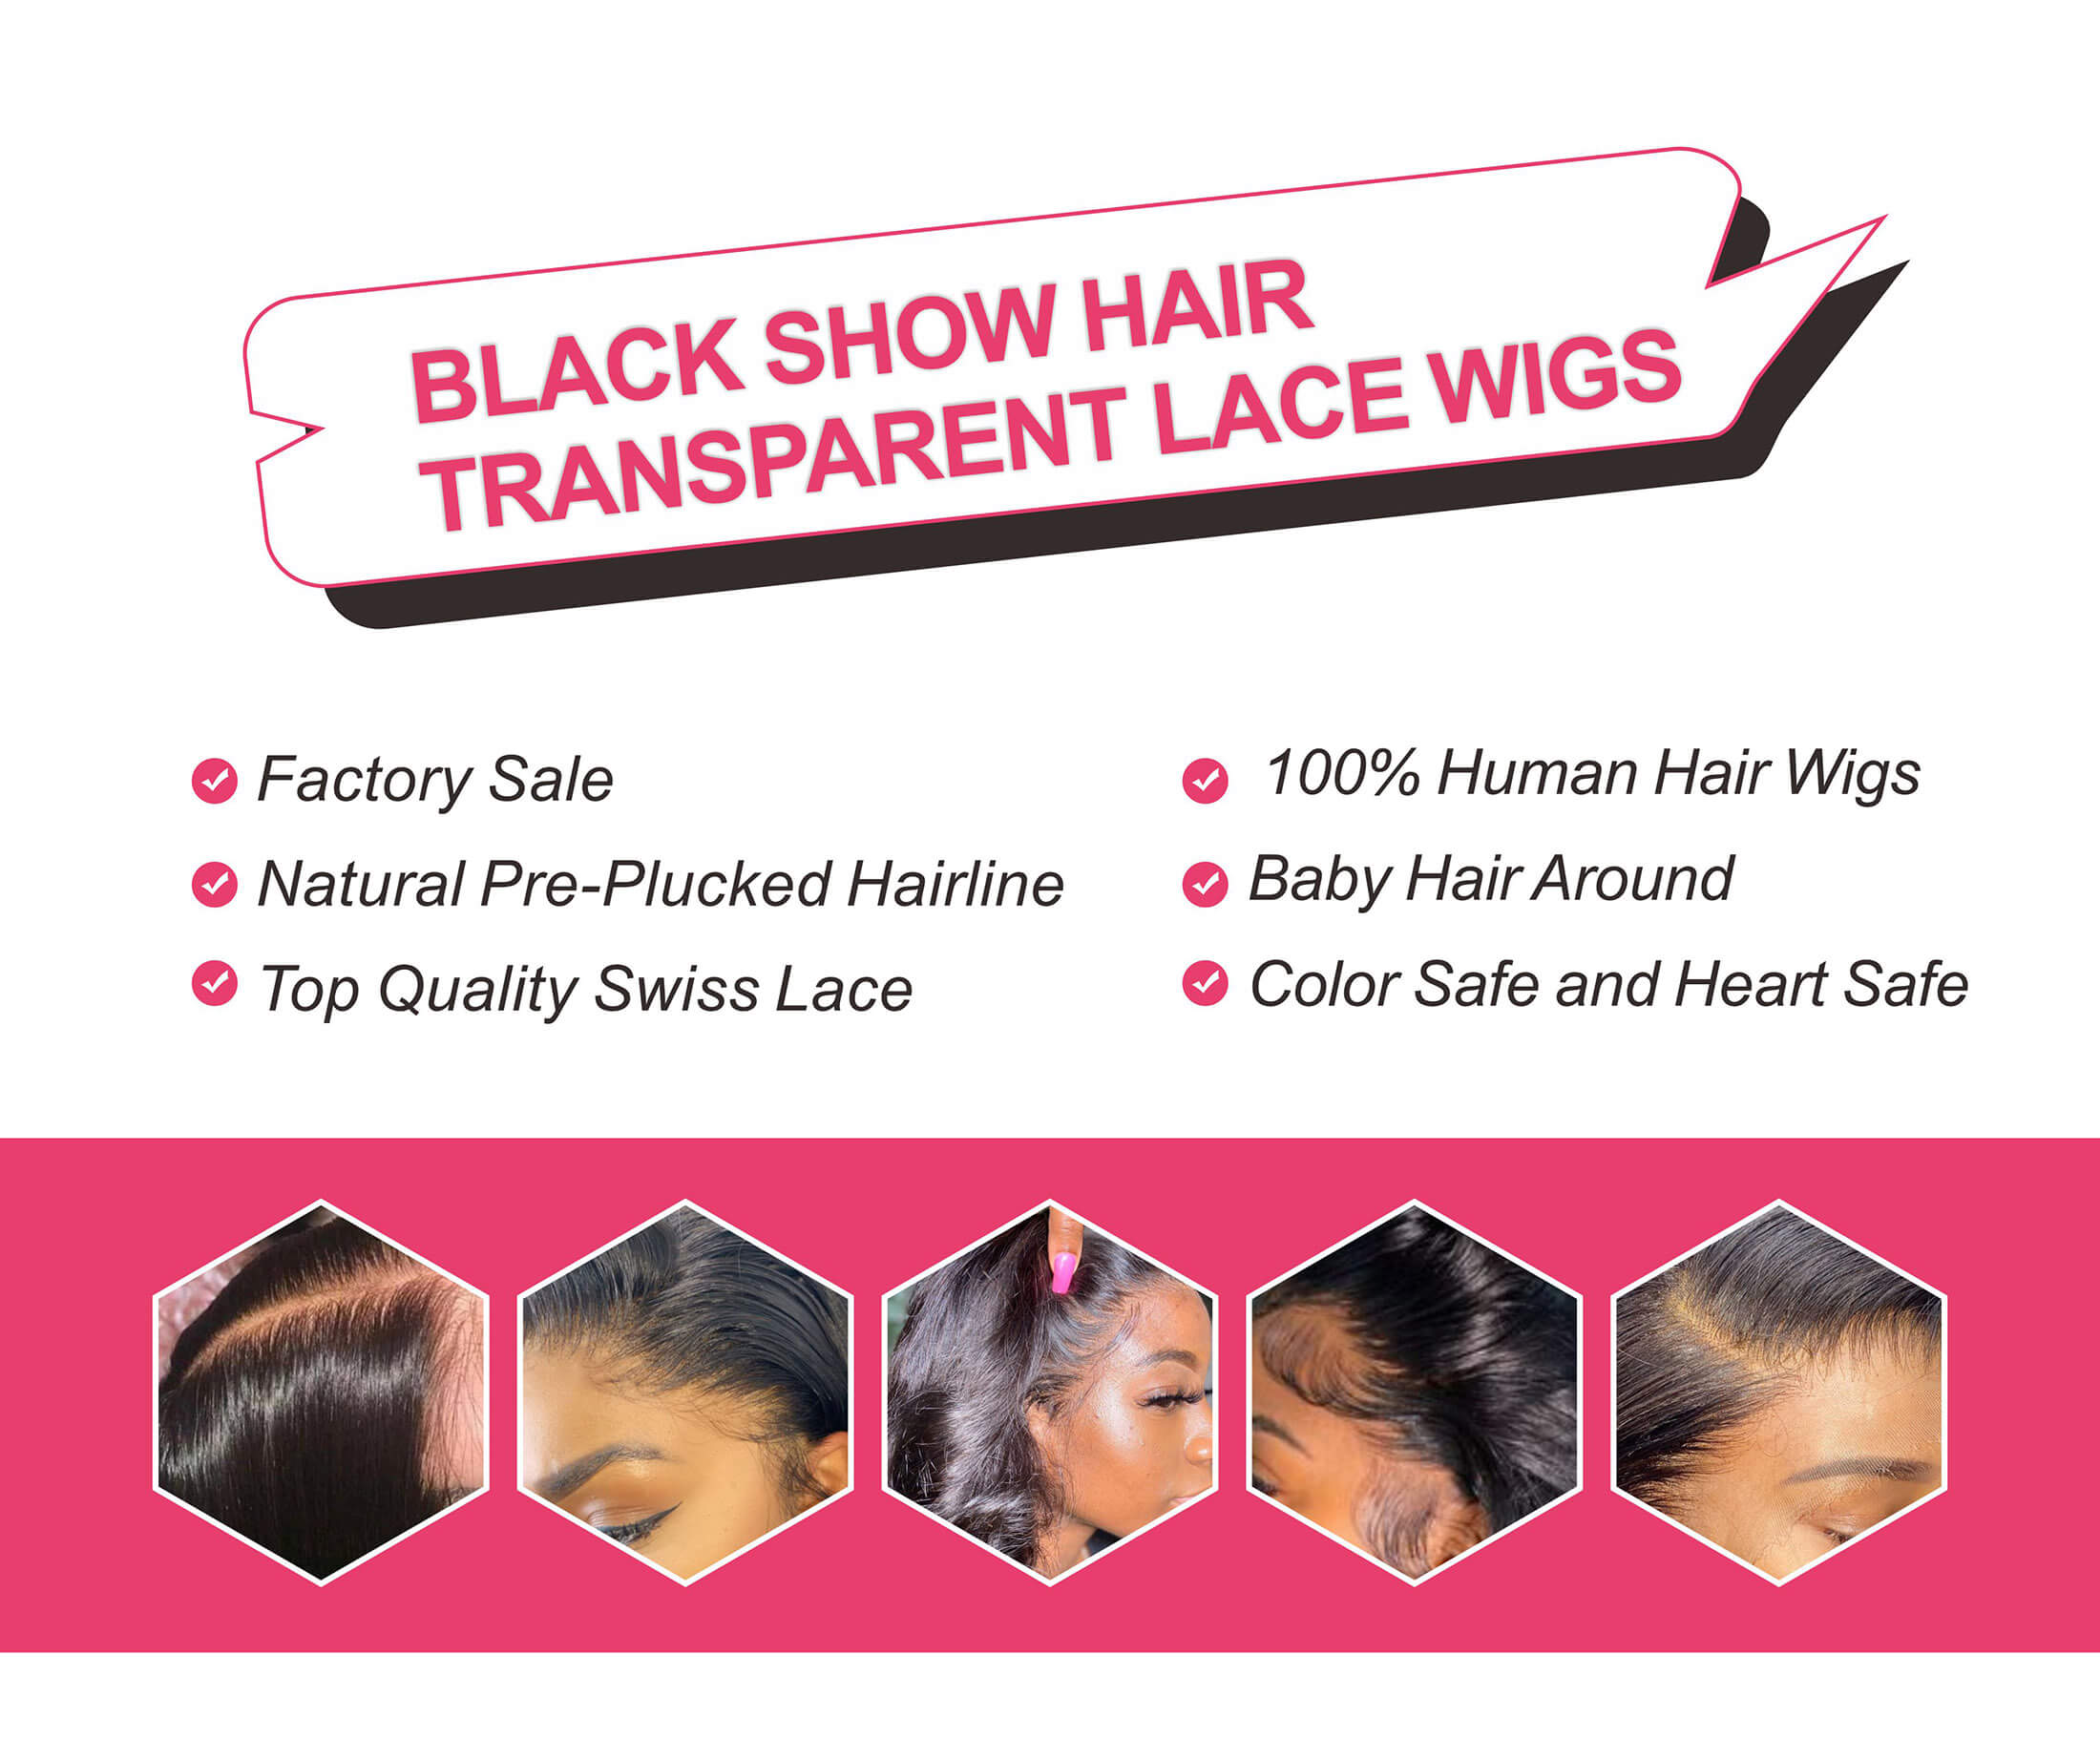 Black Show Hair transparent lace wigs